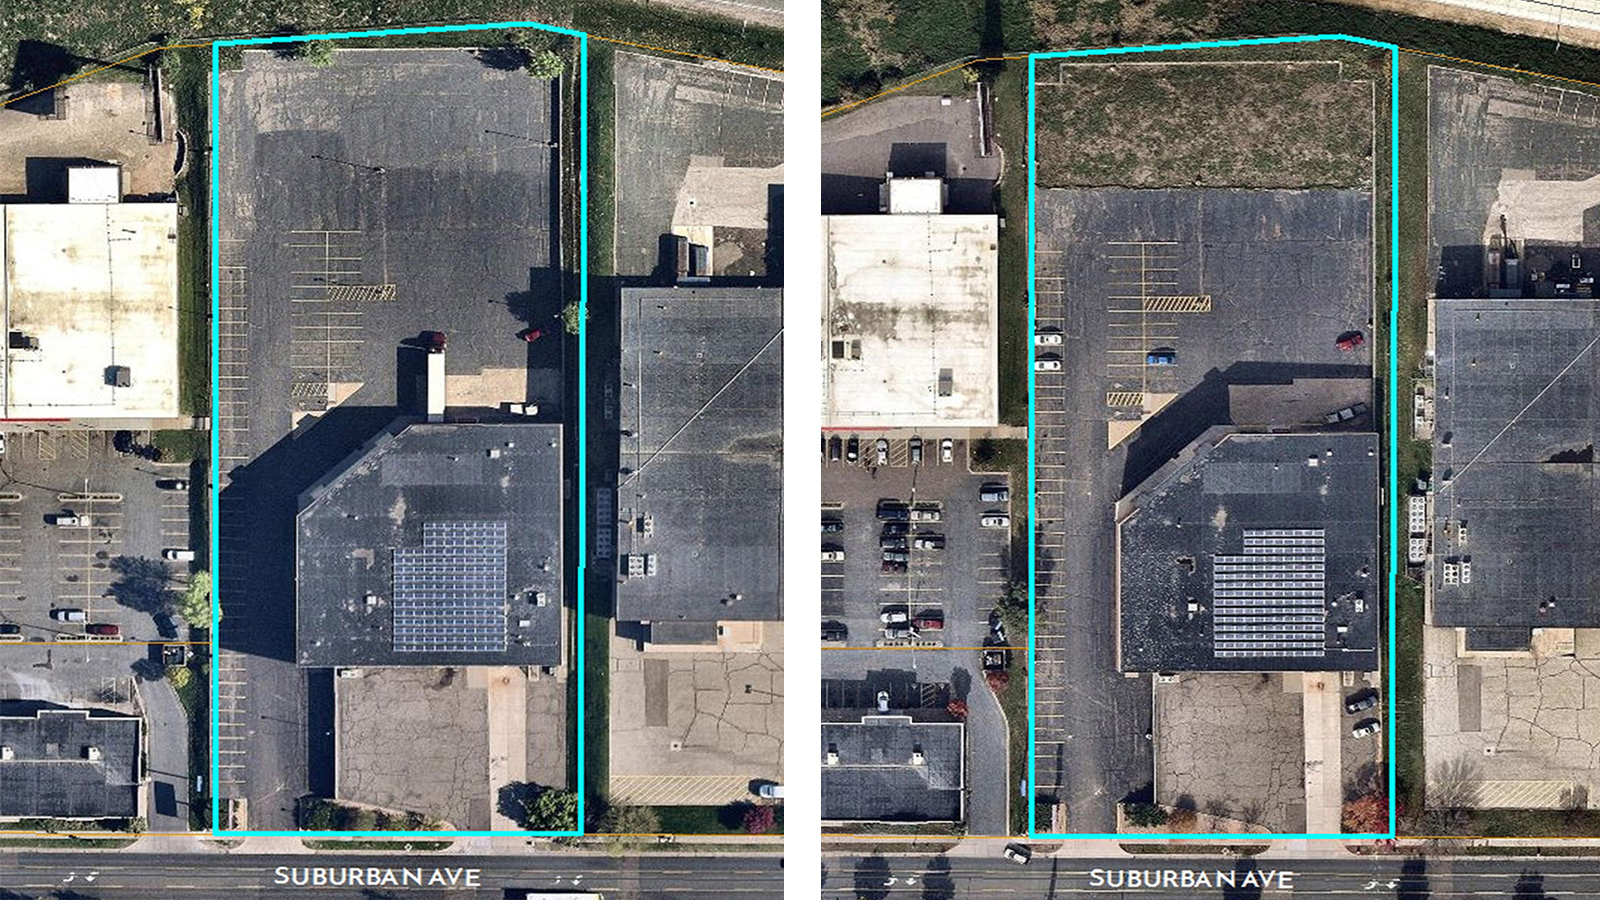 Slumberland lot before and after